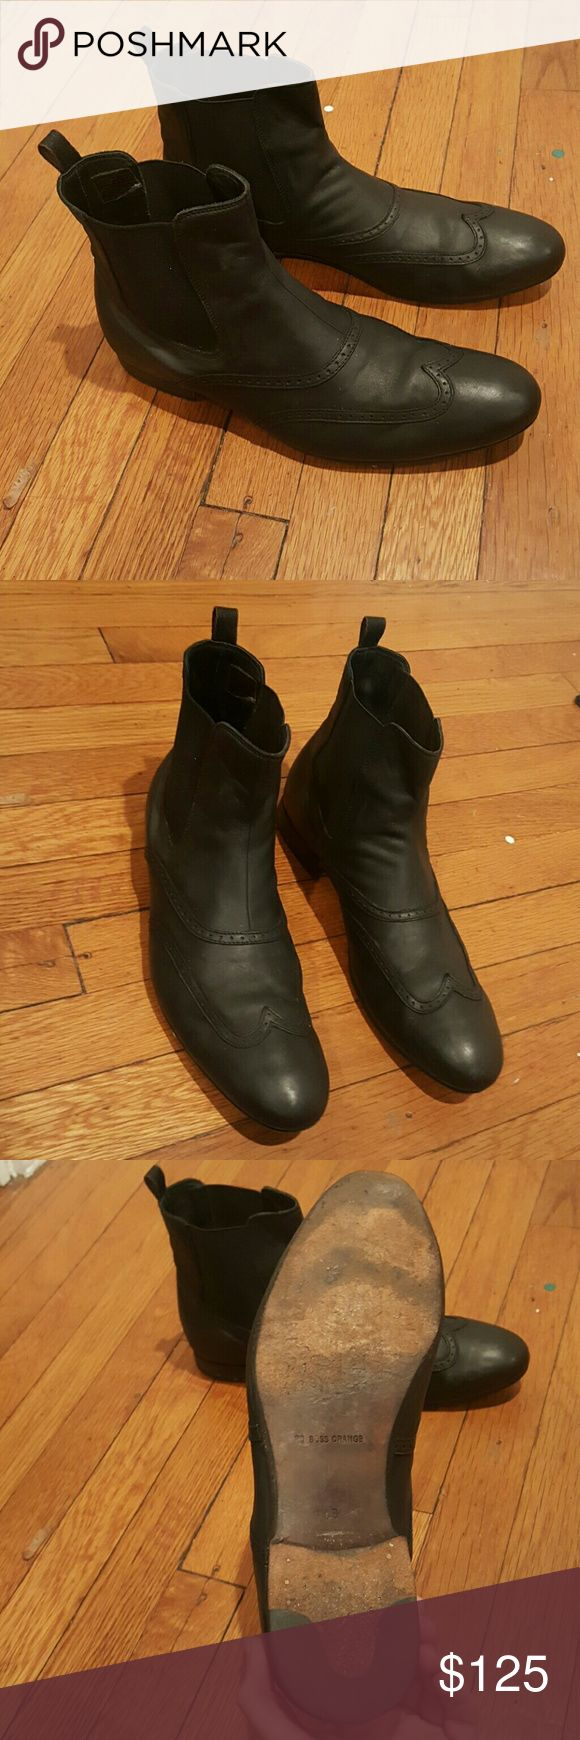 HUGO BOSS ORANGE BOOTS MENS 43 BLACK HUGO BOSS BLACK WINGTIP CHEALSEA BOOTIES DOUBLE GORE BOOTS BEAUTIFUL GREAT QUALITY LEATHER SOLES EXCELLENT CONDITION Hugo Boss Shoes Oxfords & Derbys